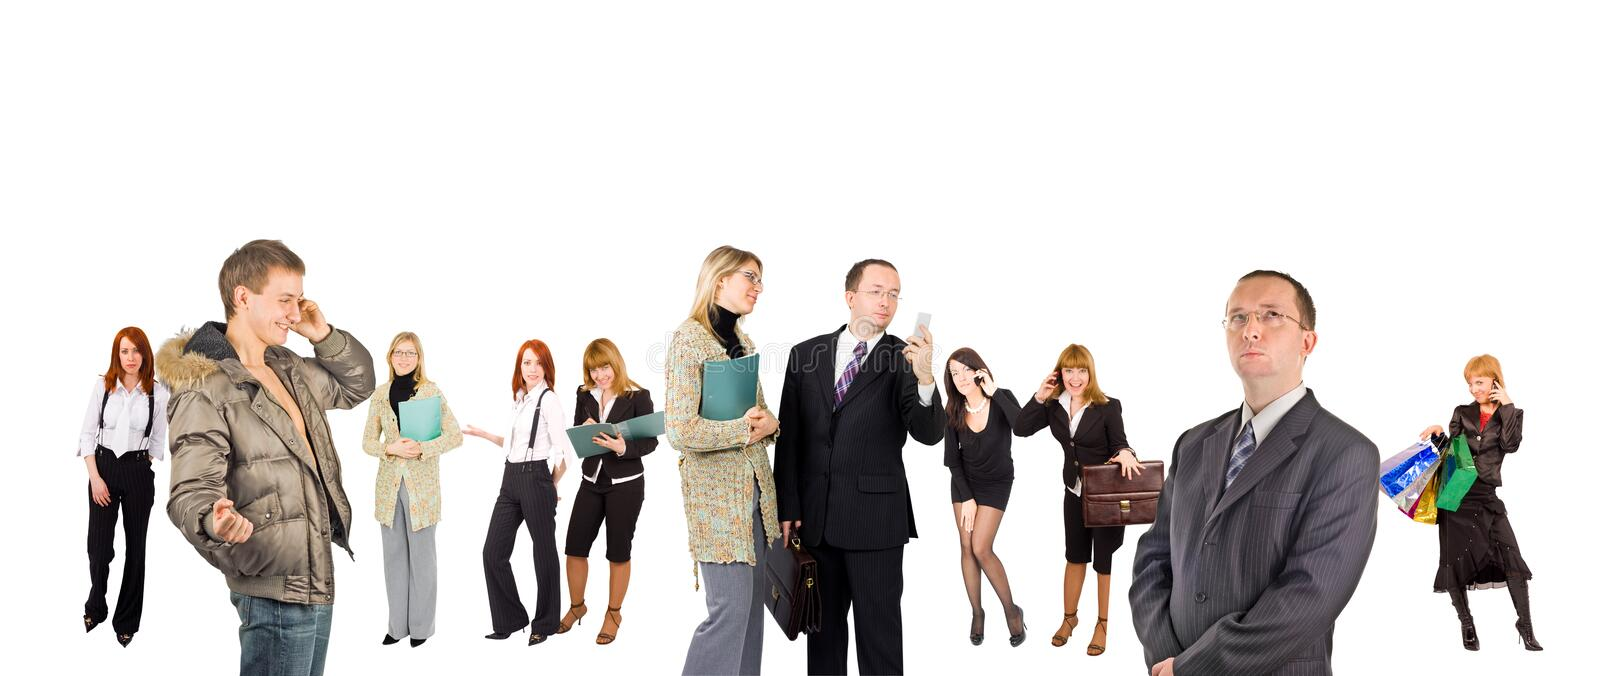 Download Diversity In Business Concept Stock Photo - Image: 4888066